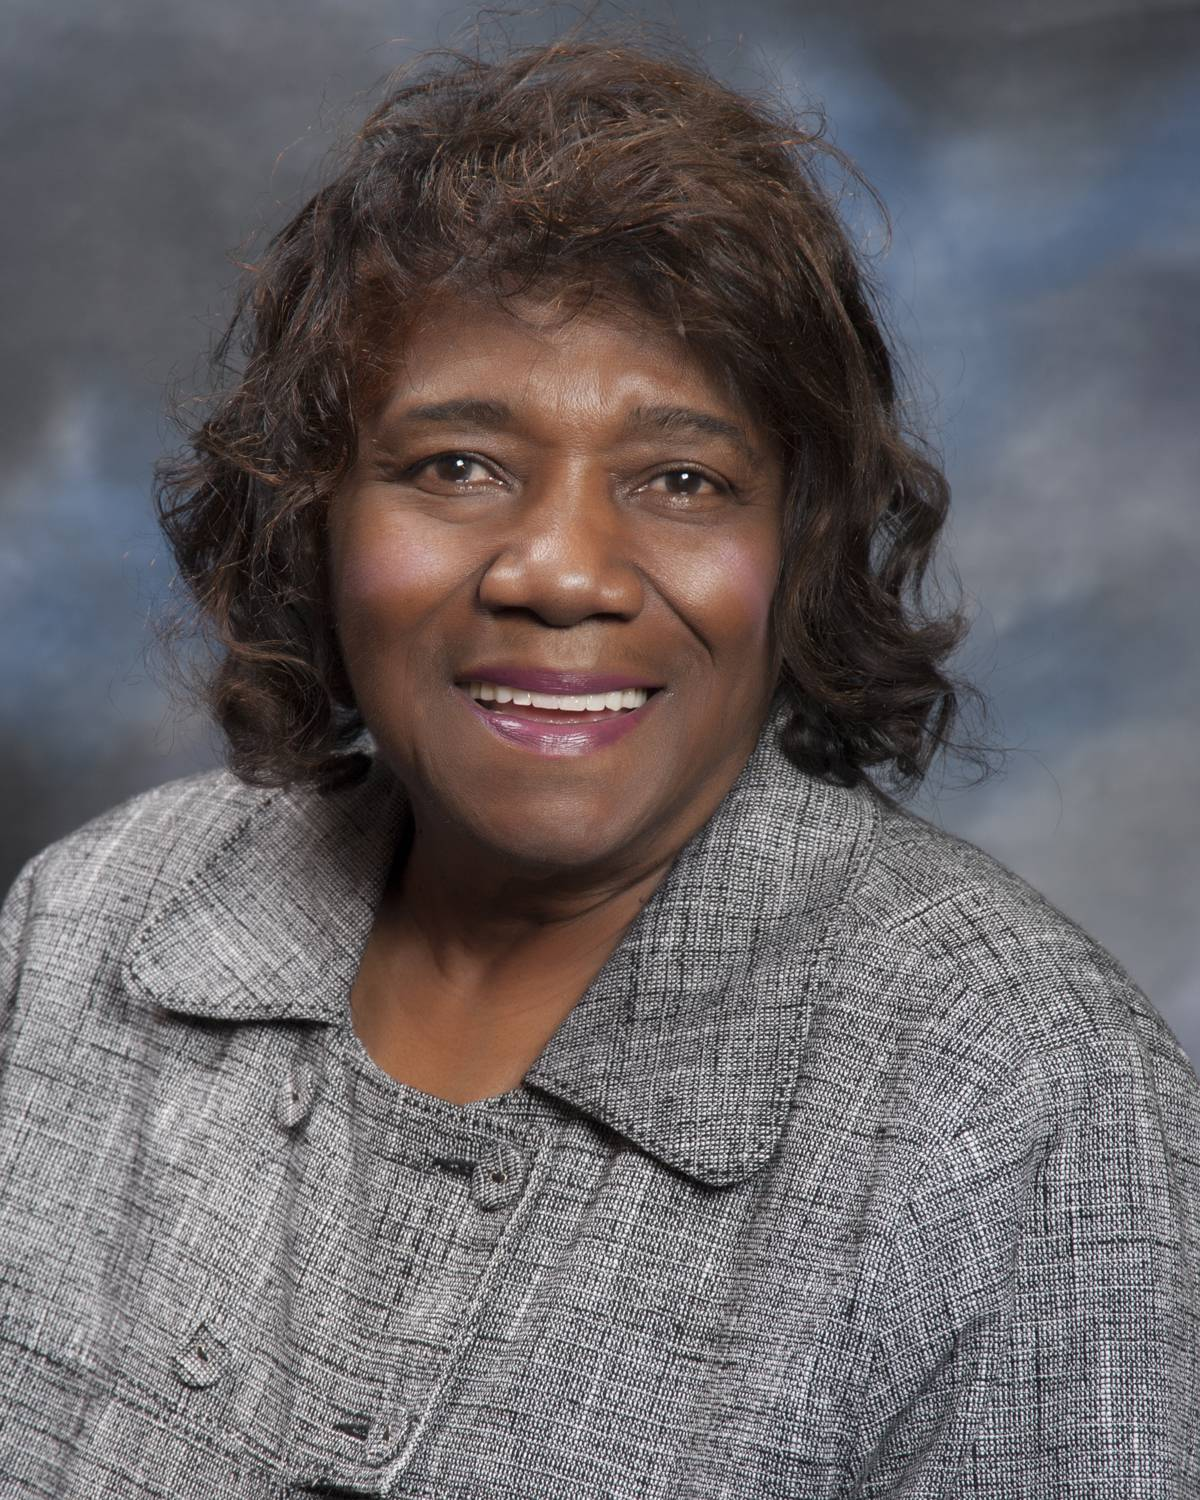 Lake County Board member Audrey Nixon, 81, has died.